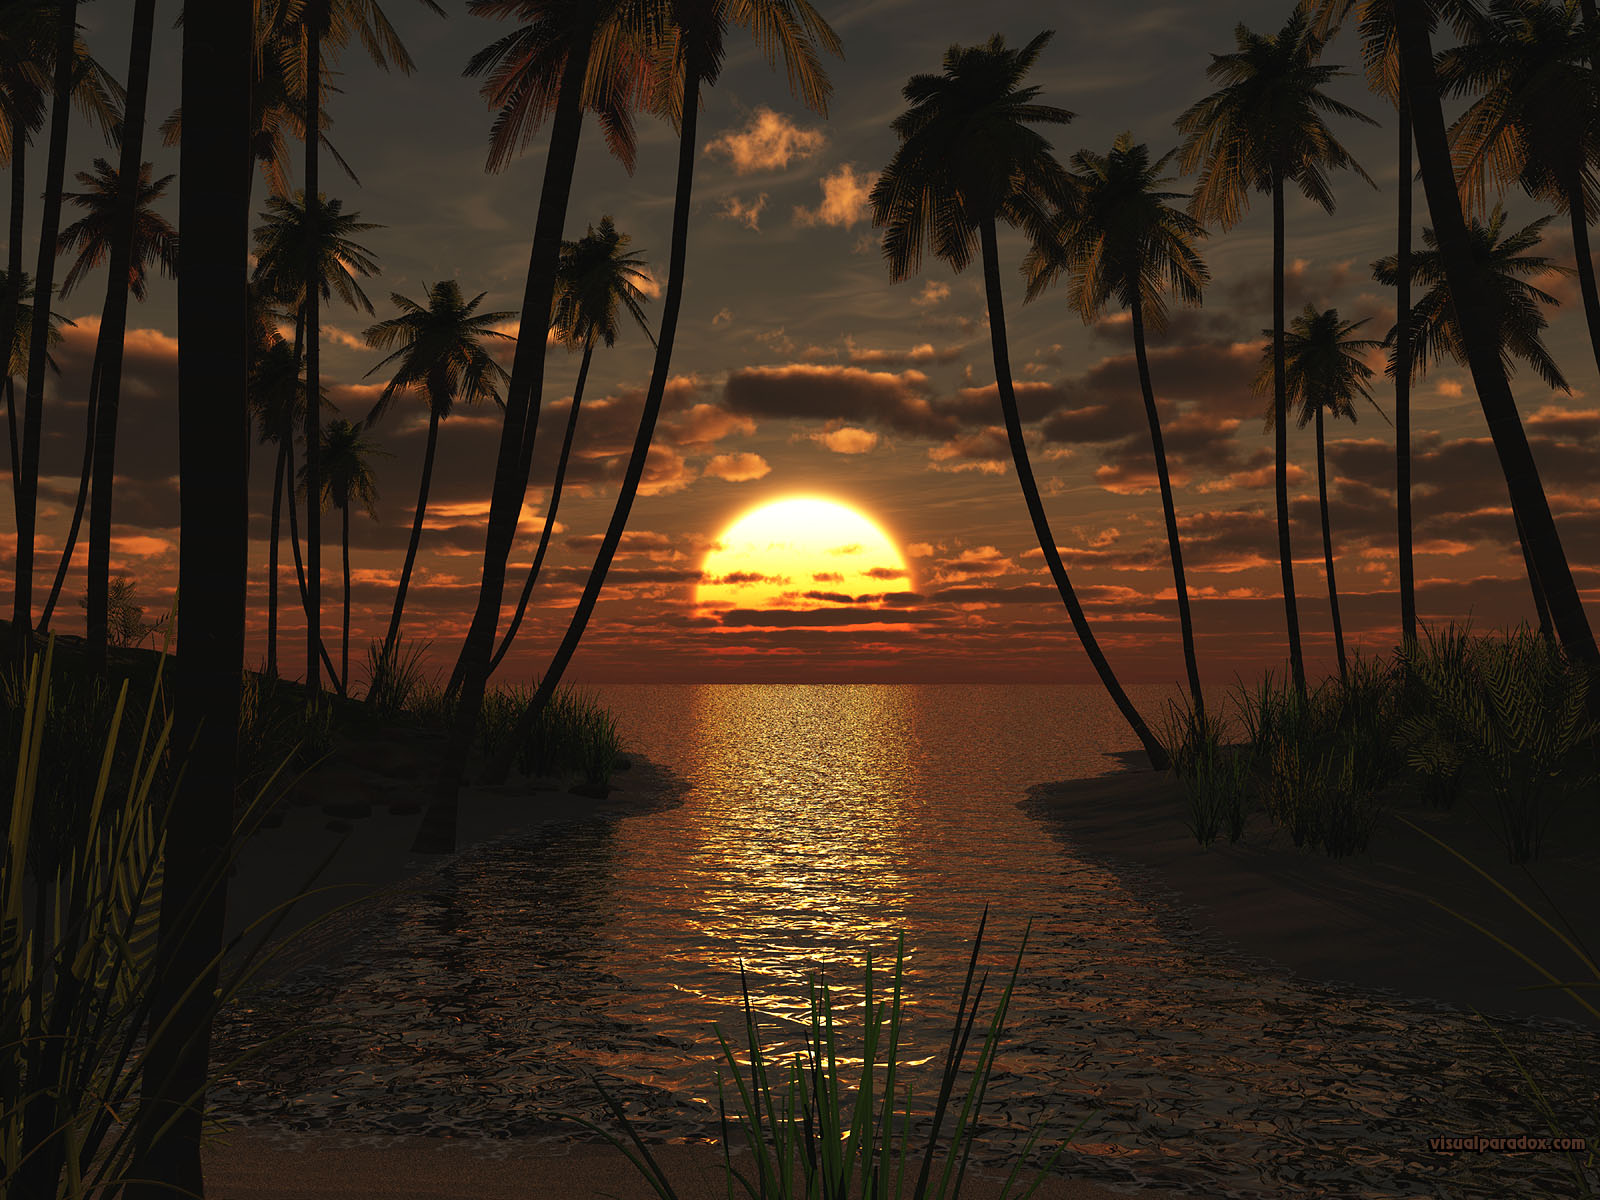 back, background, beach, beaches, beautiful, beauty, blue, clouds, coast, coastline, coconut, color, cove, deserted, dream, dusk, evening, fiery, forest, gold, golden, grove, holiday, horizon, inlet, island, landscape, leaf, light, man, natural, nature, night, ocean, orange, outdoor, palm, palms, paradise, picturesque, reflection, sand, scenic, sea, seaside, season, shore, silhouette, sky, summer, sun, sundown, sunlight, sunny, sunrise, sunset, sunshine, surf, travel, tree, trees, tropical, view, 3d, wallpaper